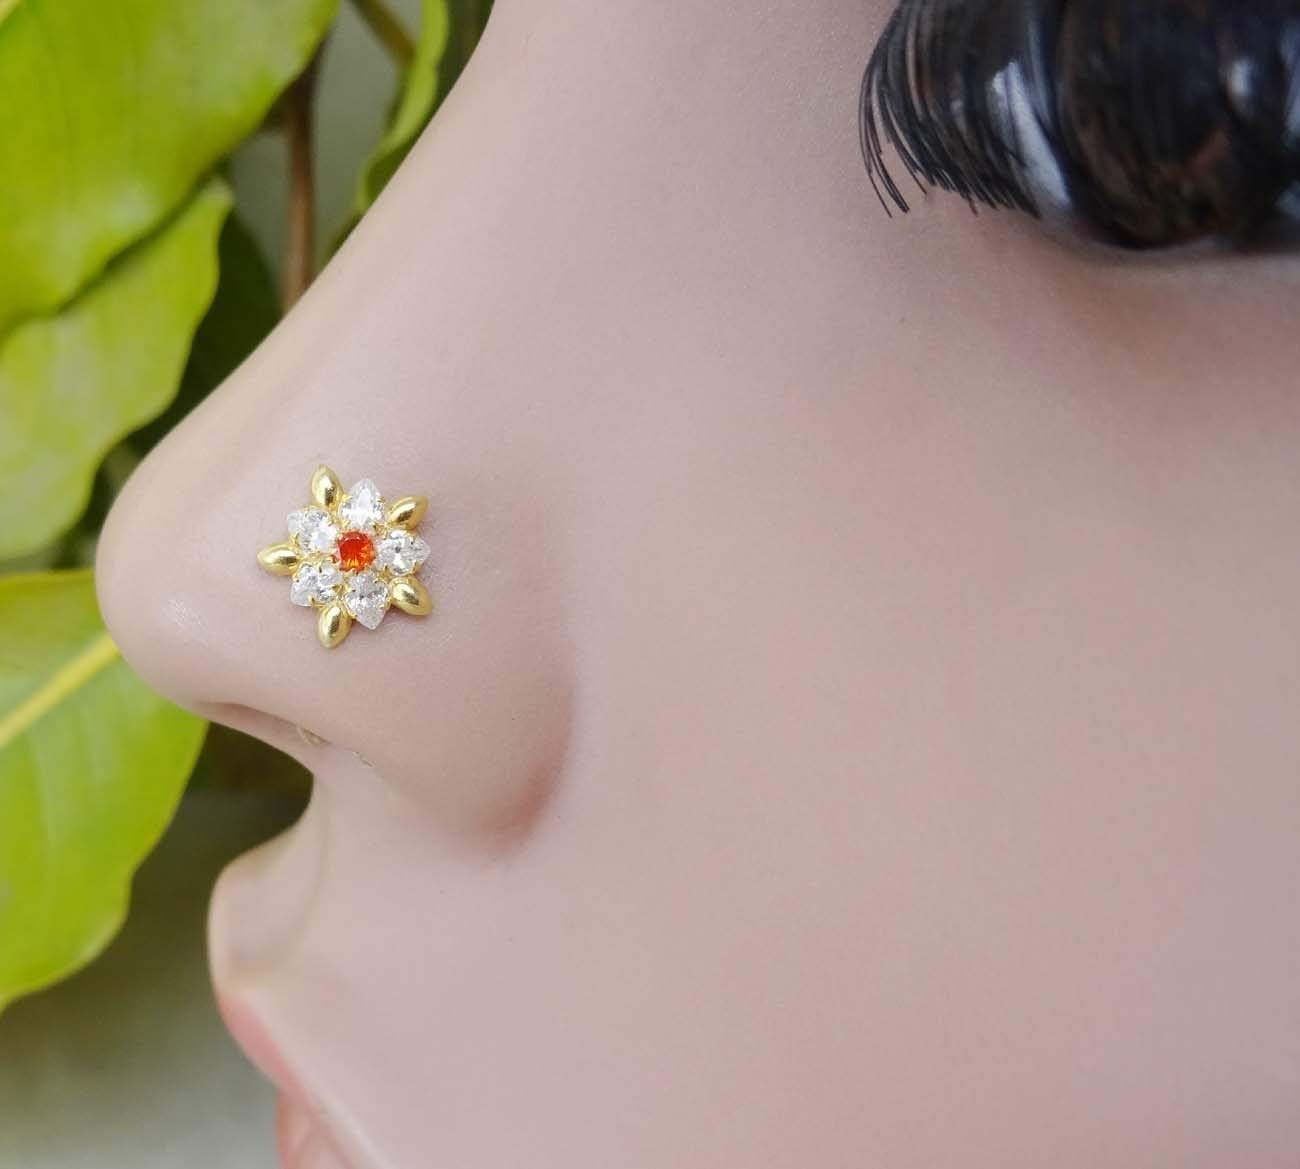 TEJ037 Sunflower Nose Screw,Citrine Gold Nose Stud,CZ Nose Stud,Crystal Nose Screw,Diamond Nose Bones,Marquise Nose Stud,925 Sterling Silver Nose Stud,Gold Nose Piercing,Crock Screw Nose Stud